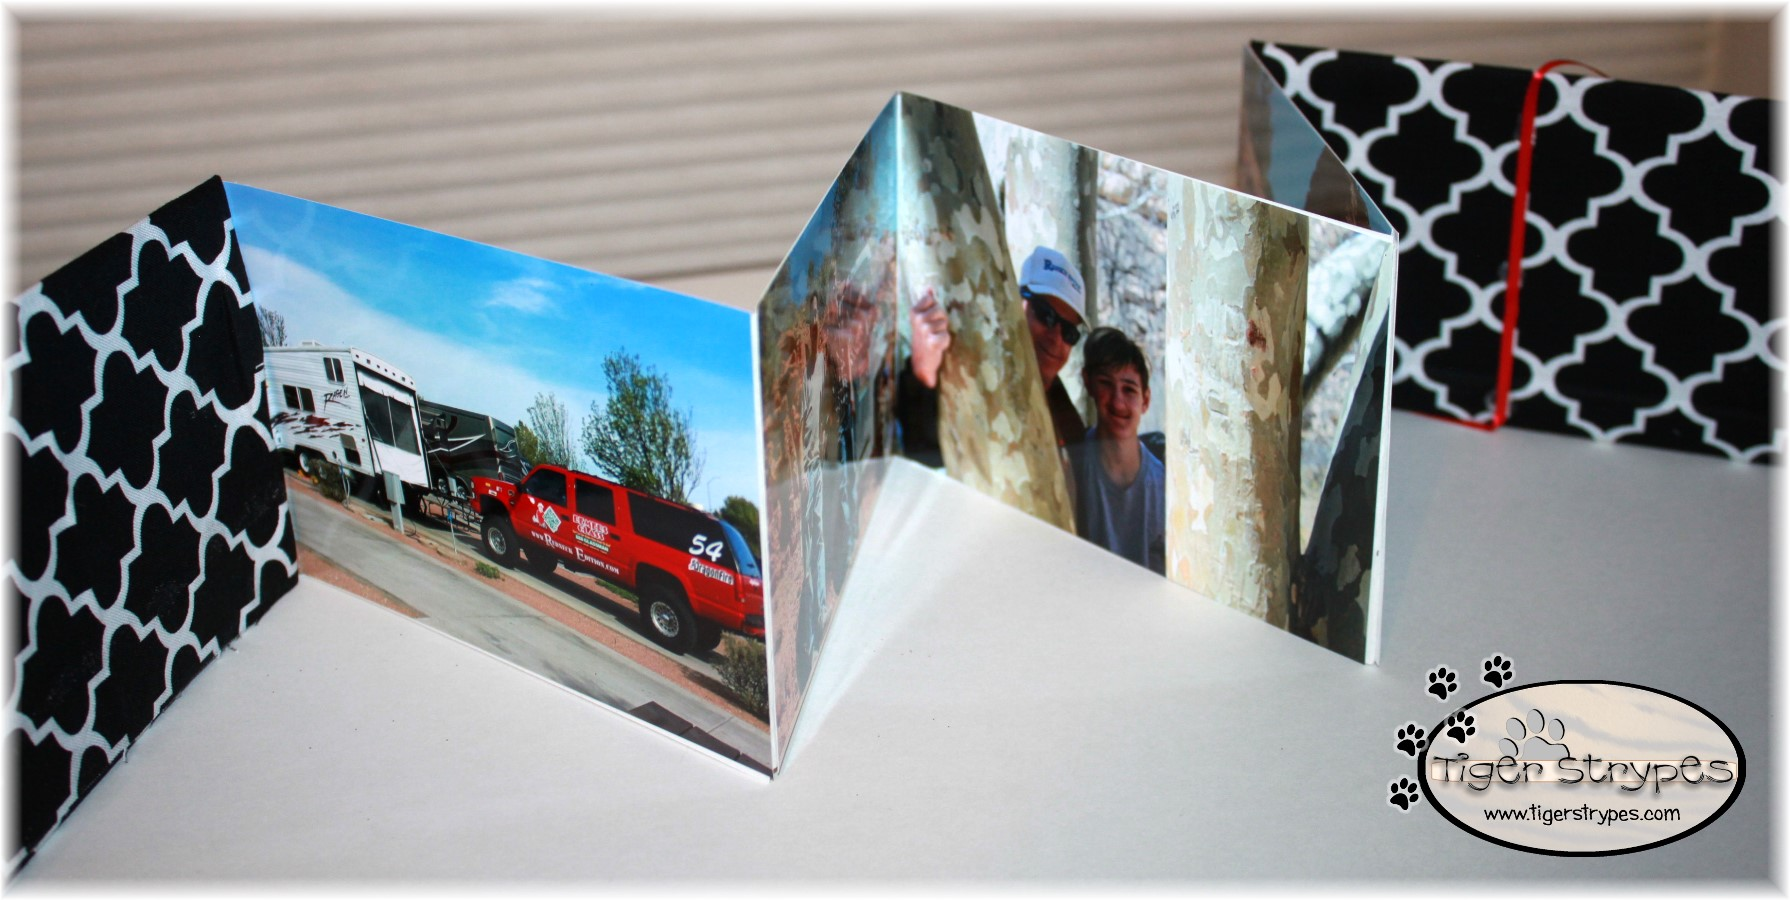 Funny photo frames, online photo effects, filters Create a book from photos